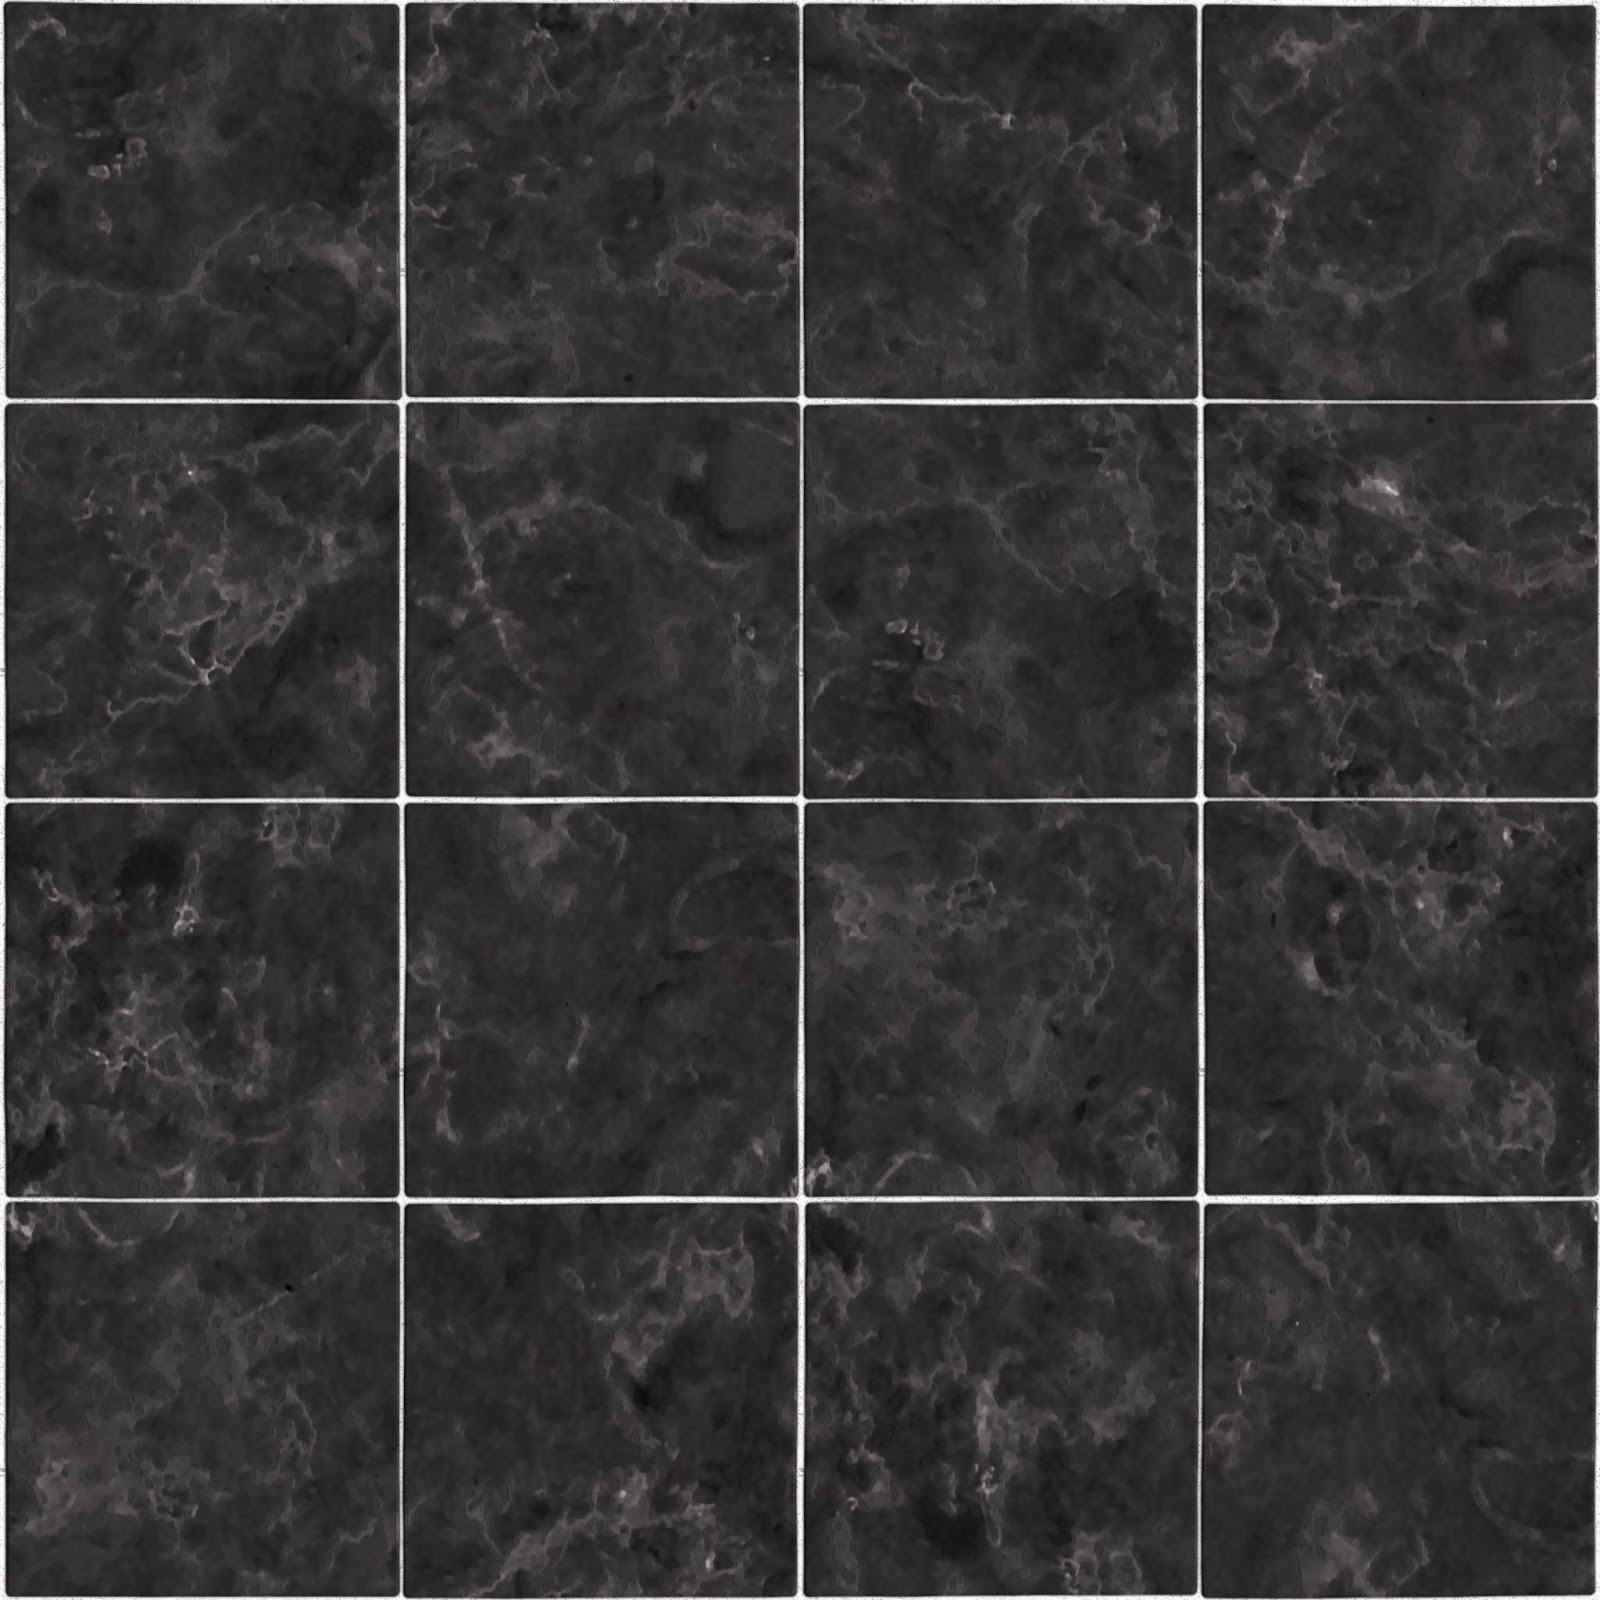 32 Good Ideas And Pictures Of Modern Bathroom Tiles Texture: HIGH RESOLUTION SEAMLESS TEXTURES: Marble